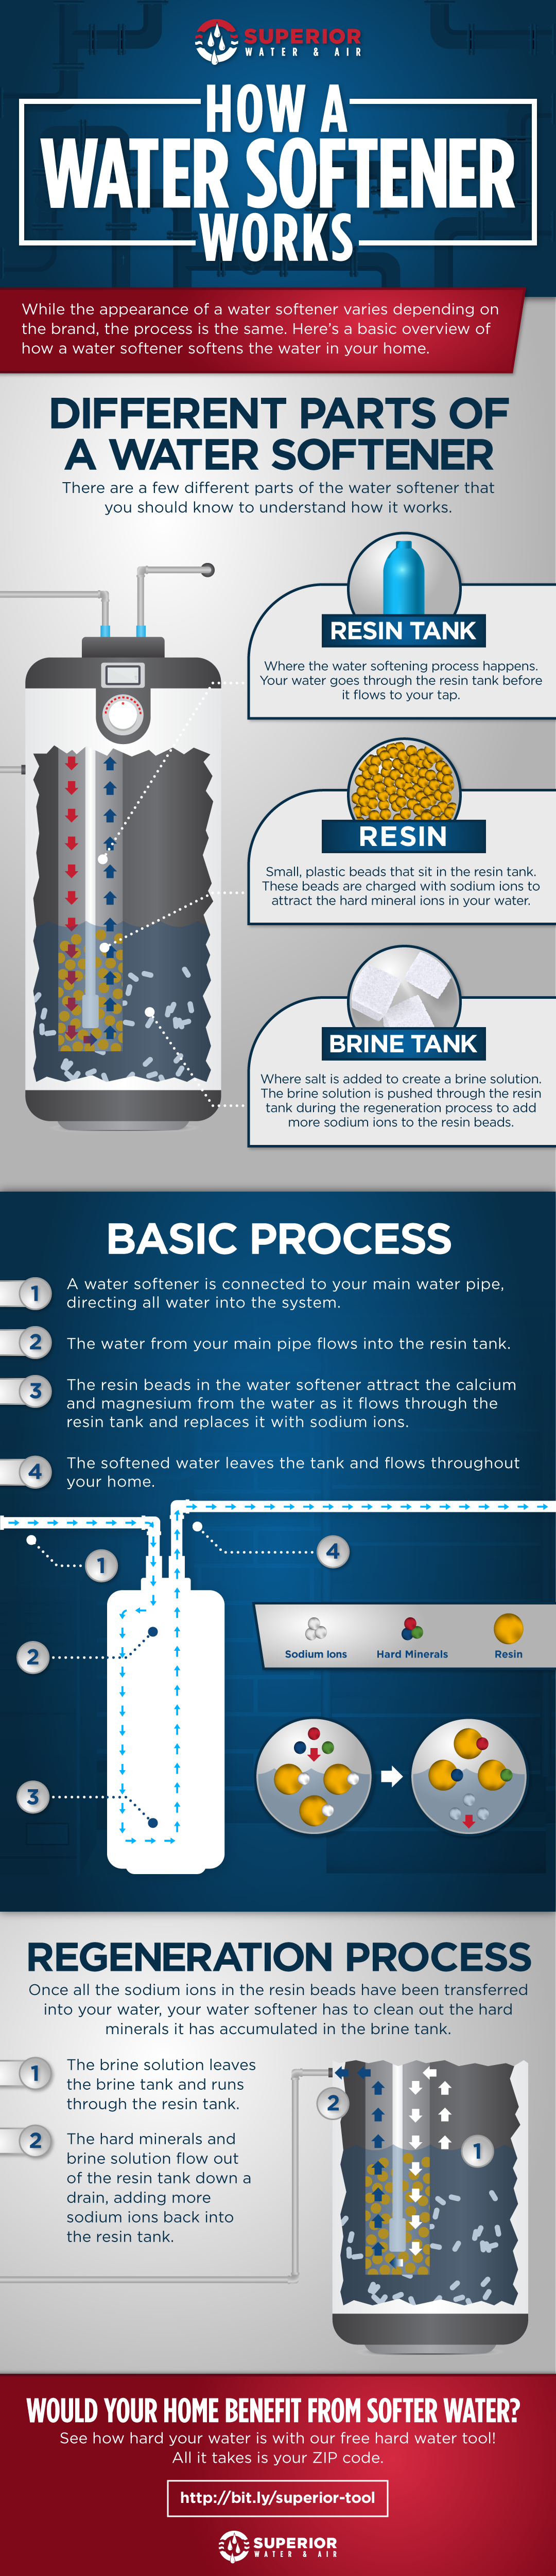 A visual diagram of how a water softener works.